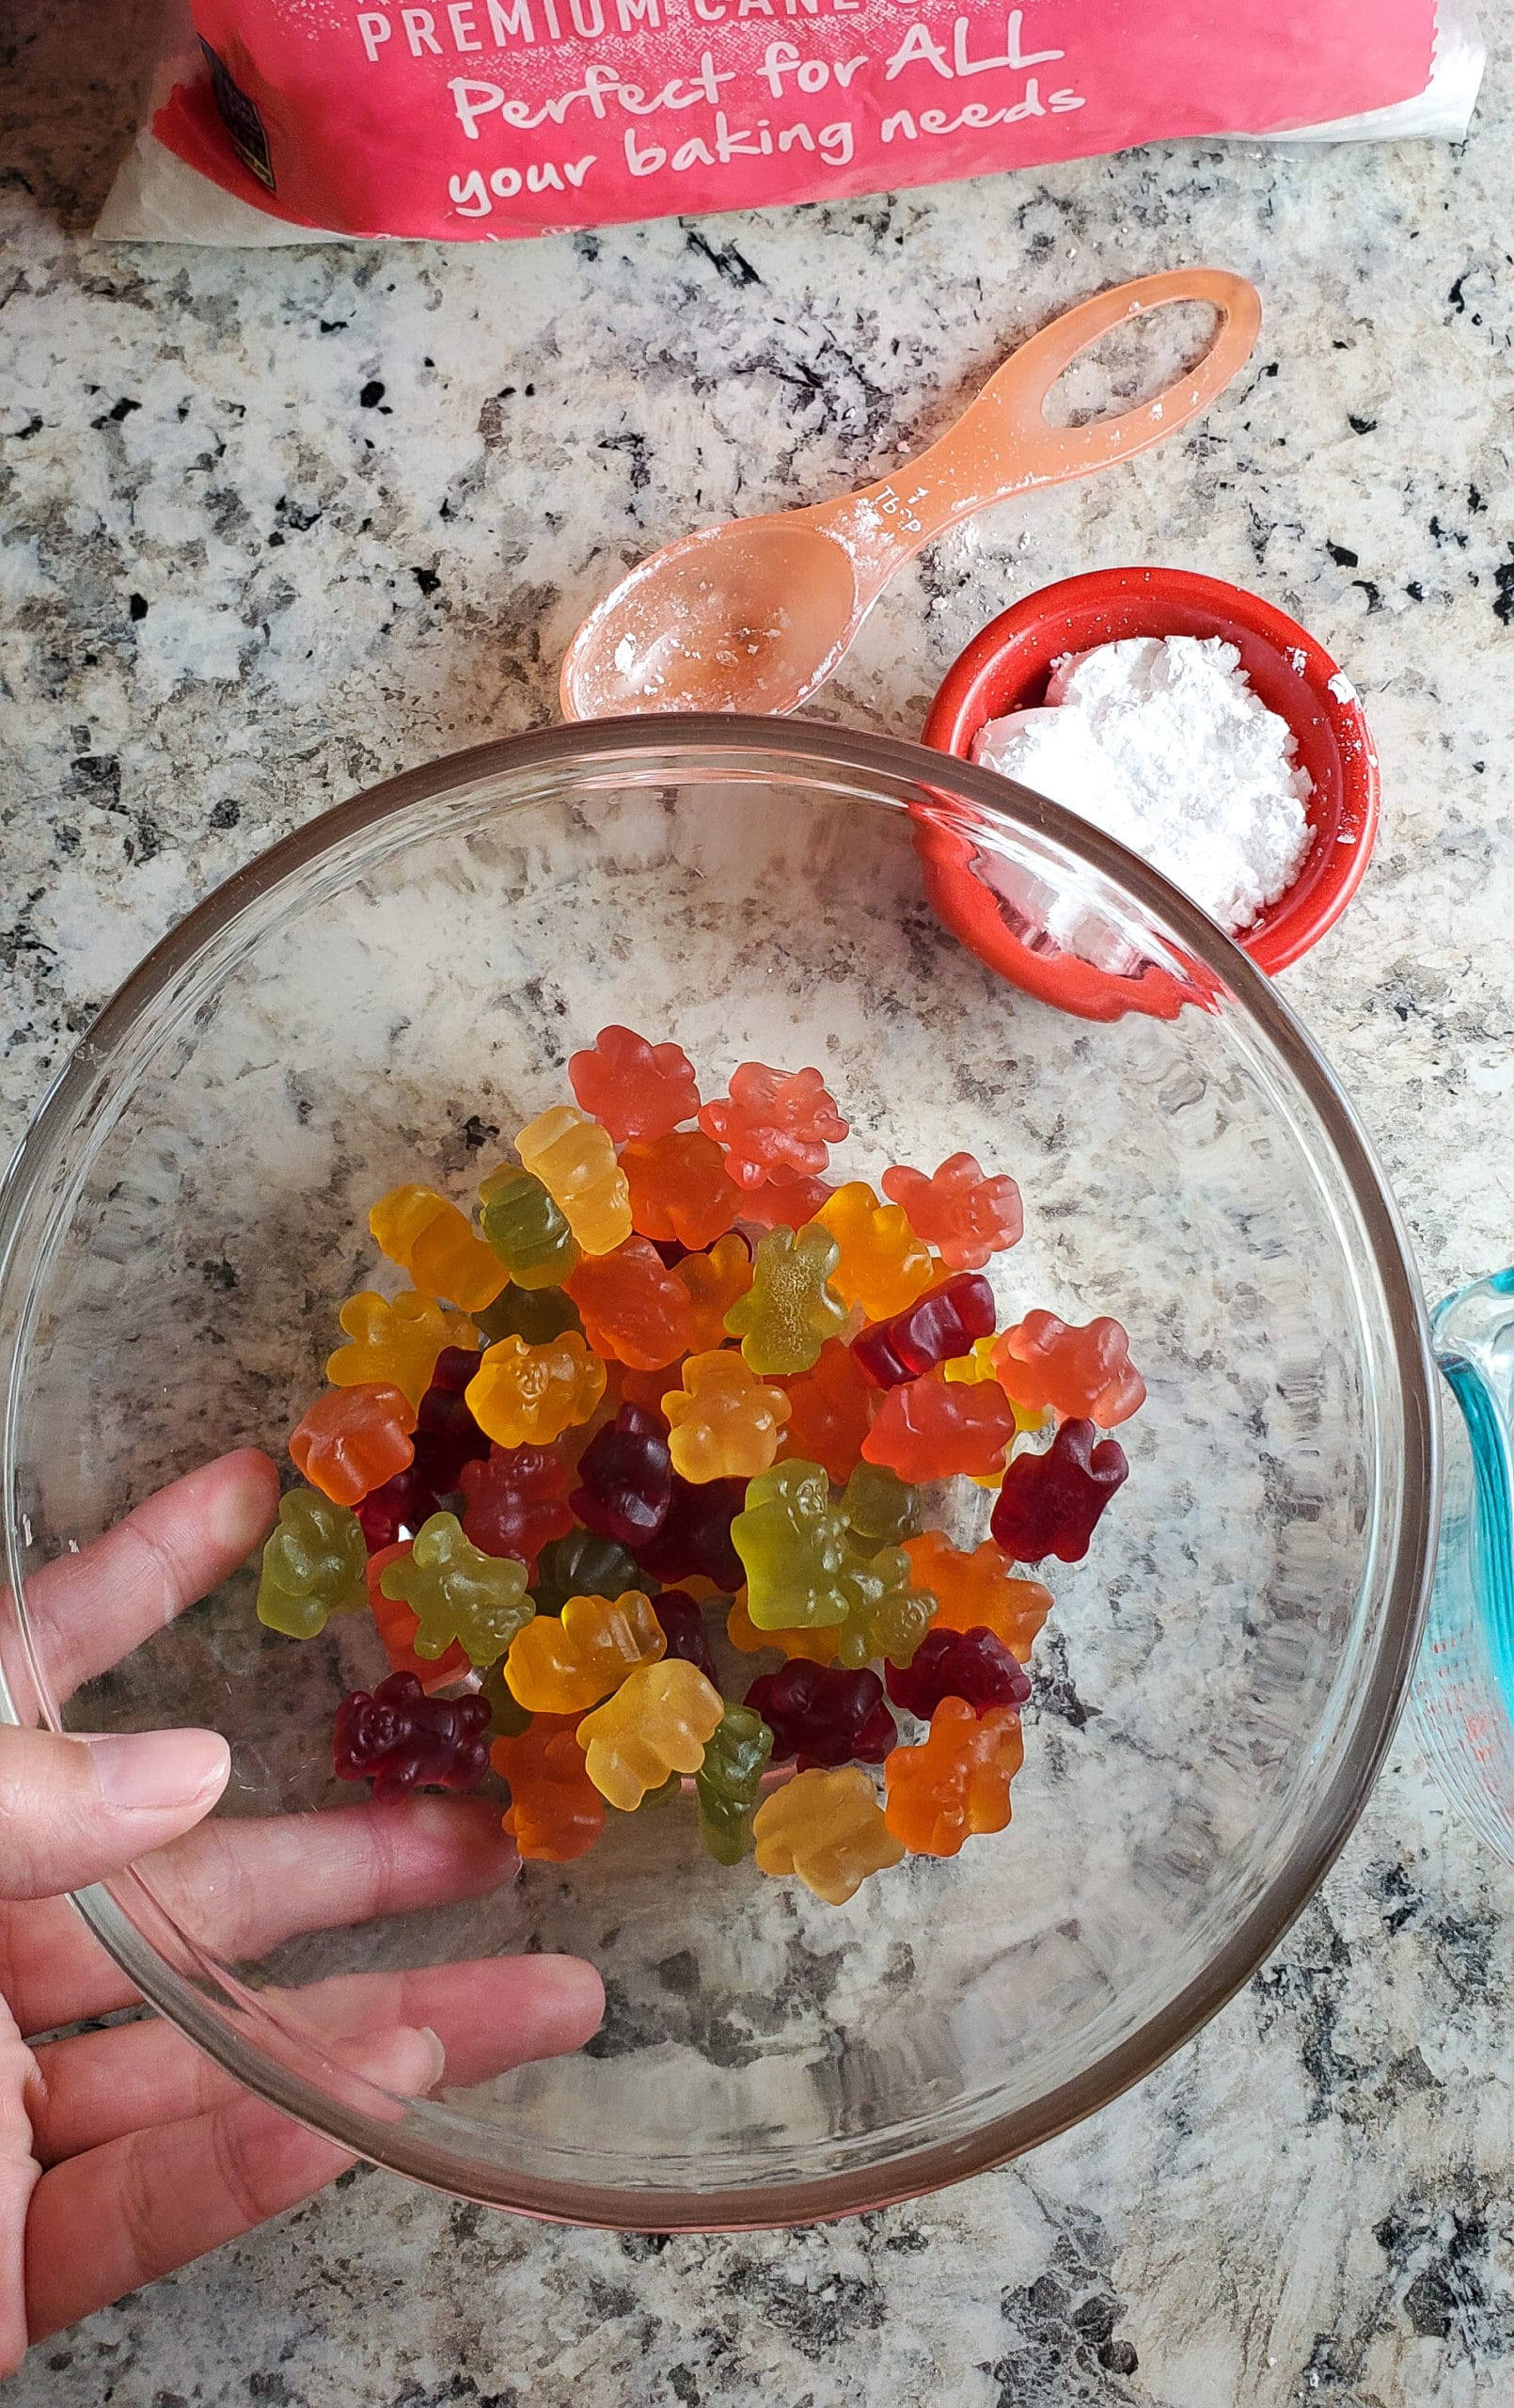 Gummy Bear Slime In Bowl. Get ready for loveable bear hugs, digital culture references, life lessons, and Gummy Bear Slime!Stack the bears up, squish them down and make this adventurous slime that you can actually eat!